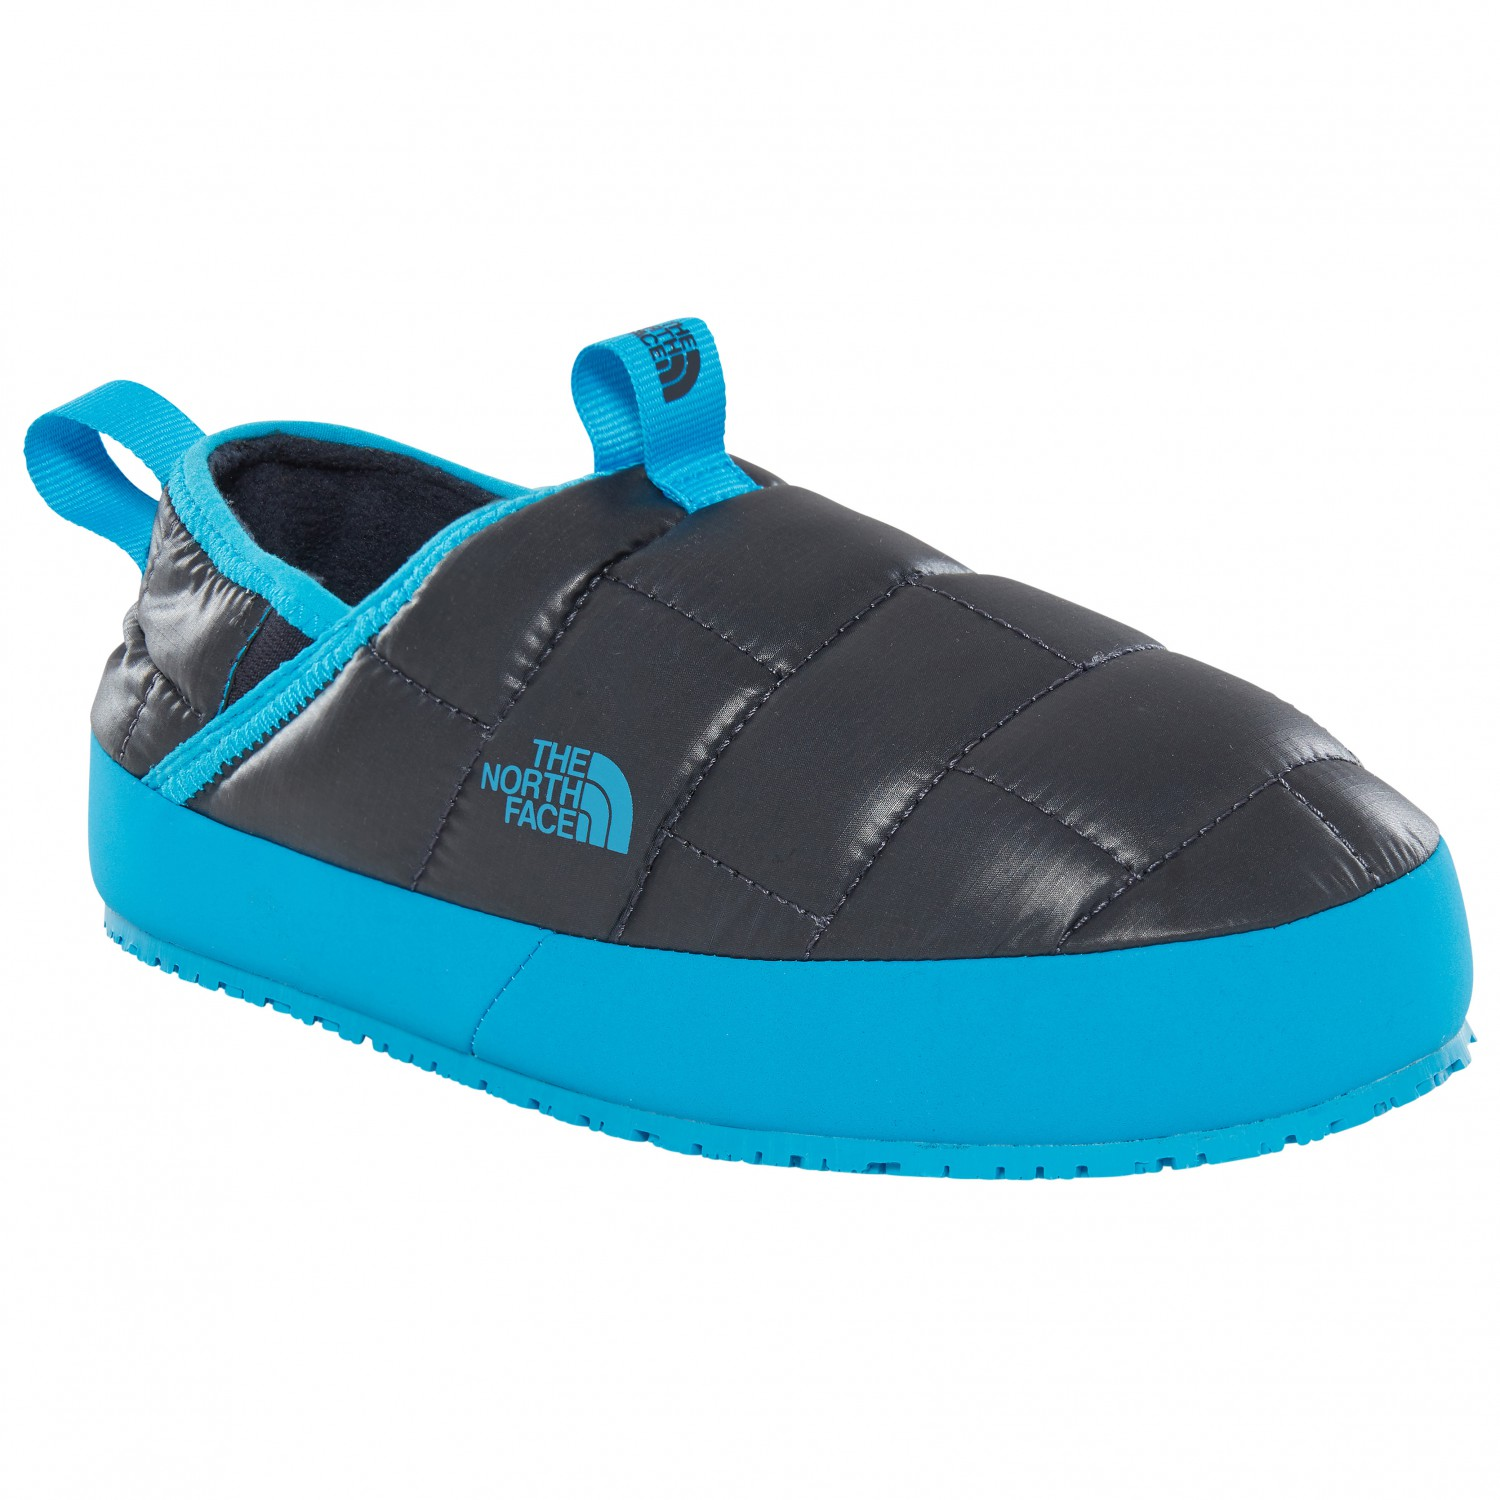 dda520009 The North Face - Youth Thermal Tent Mule II - Slippers - Shiny Urbn Navy /  Hypr Blue | 1 (US)